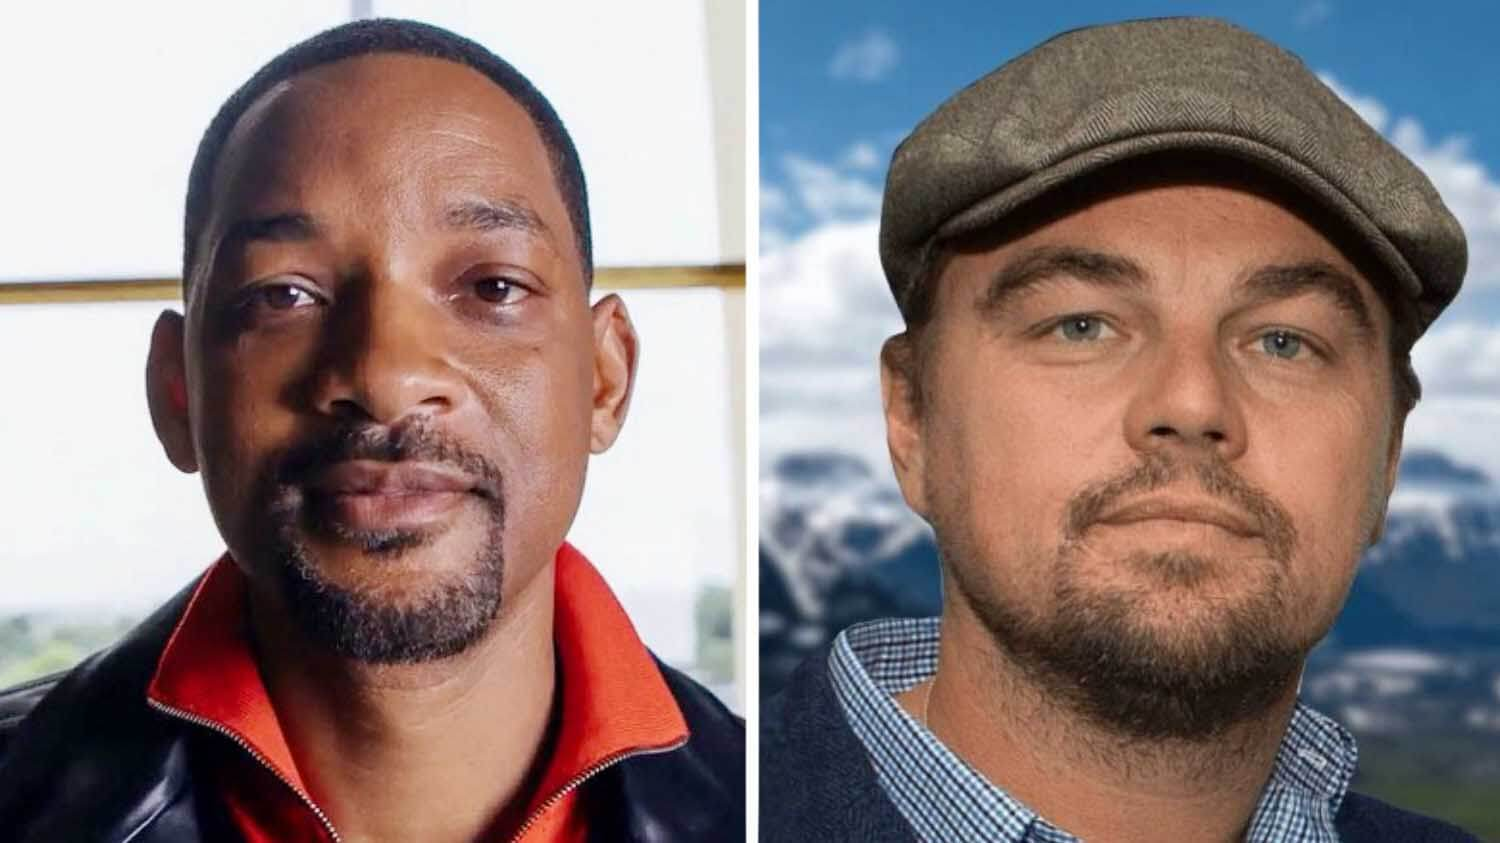 Leonardo DiCaprio Teamed Up With Will Smith To Save The Amazon Rainforest